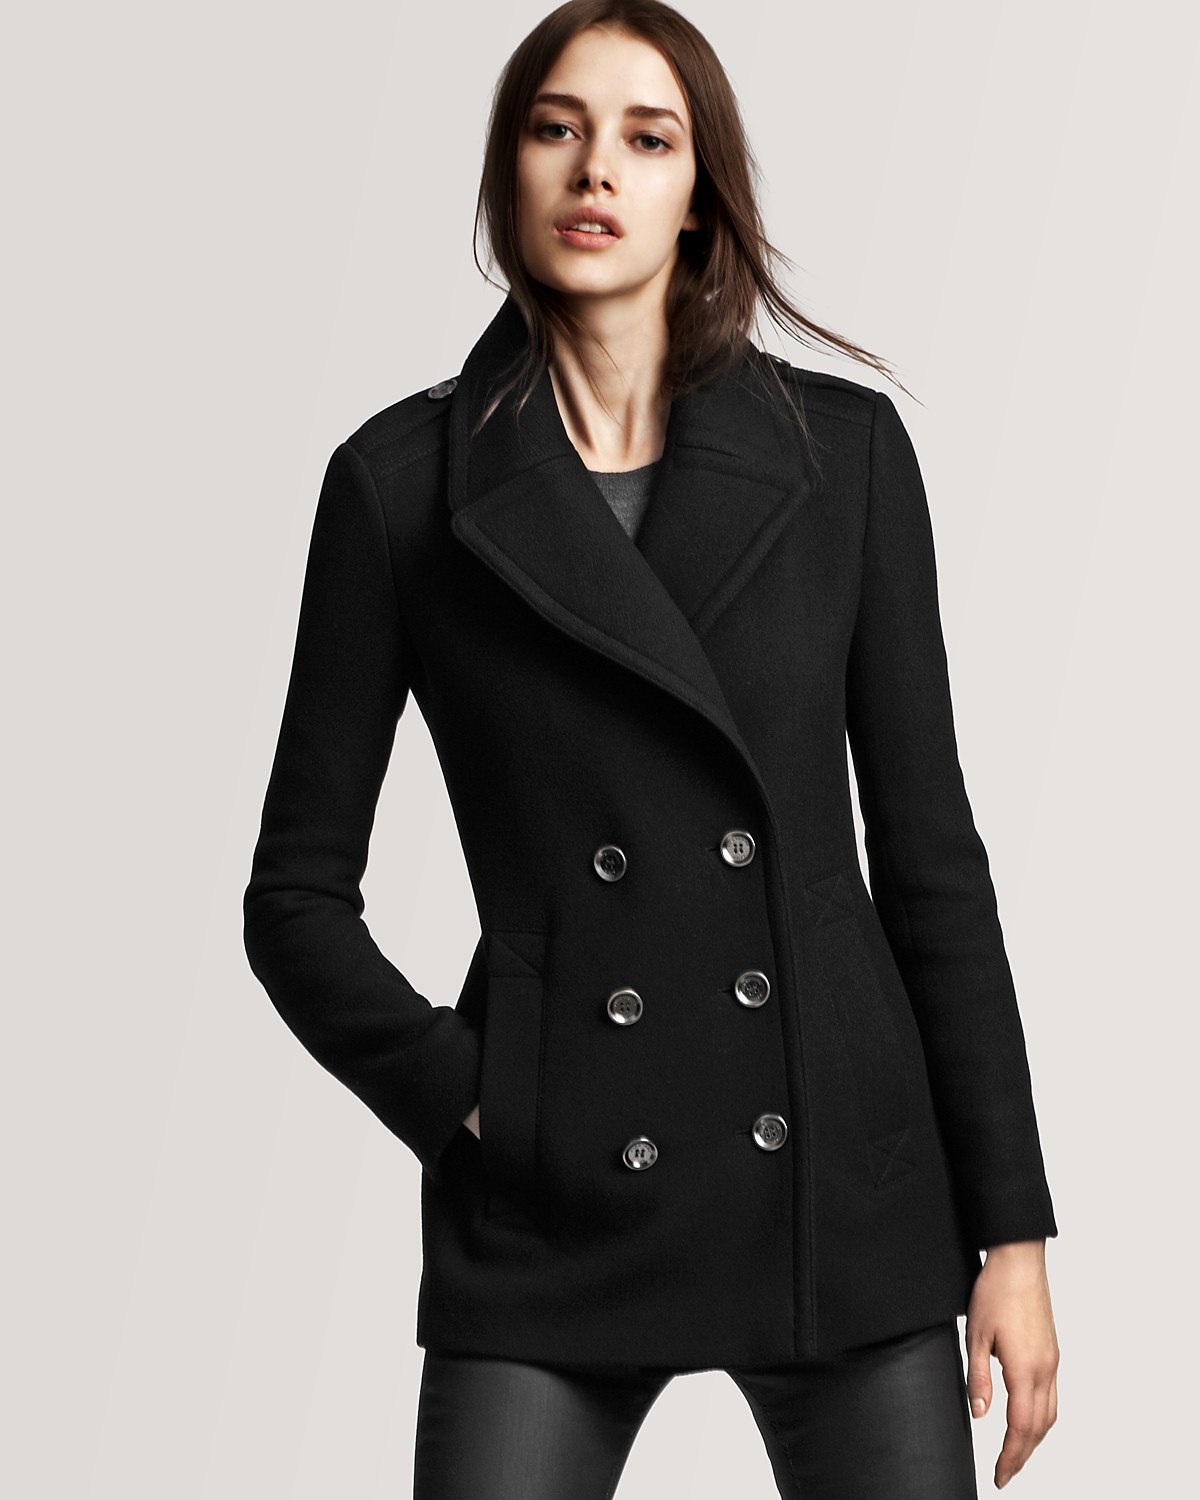 Shop for Women's Wool Pea Coats at senonsdownload-gv.cf Eligible for free shipping and free returns.